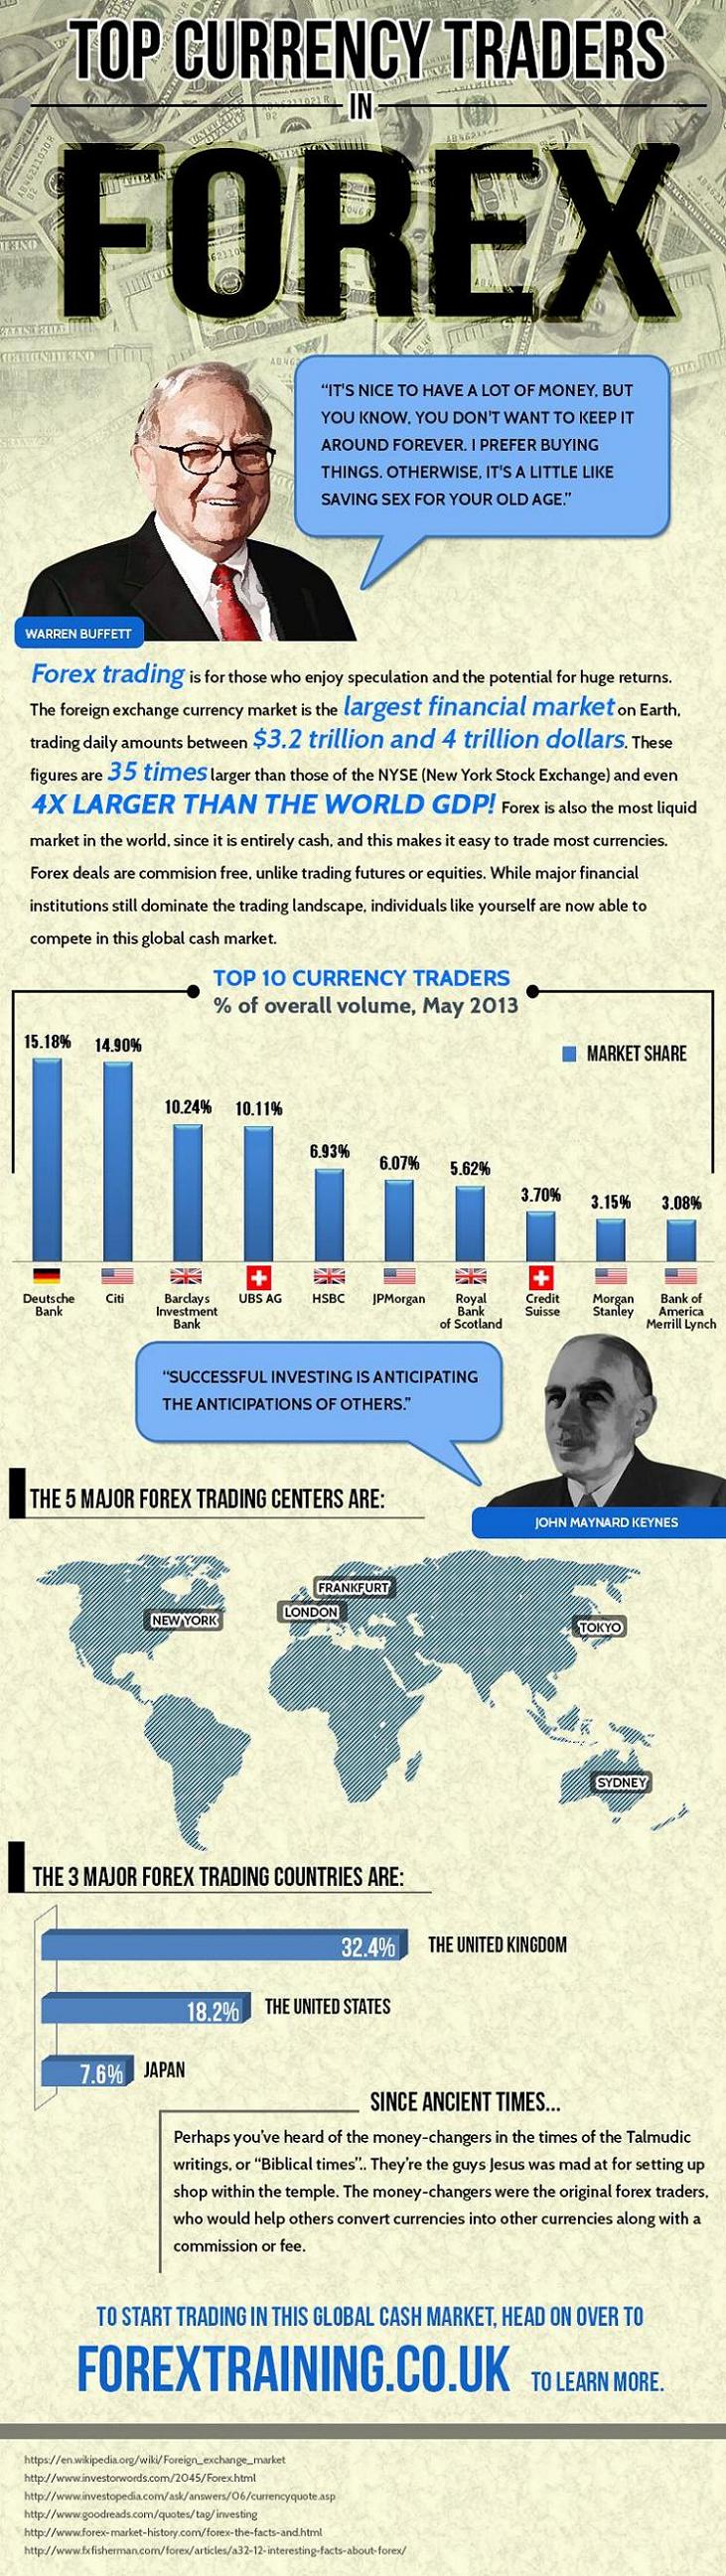 Top 10 forex trading sites